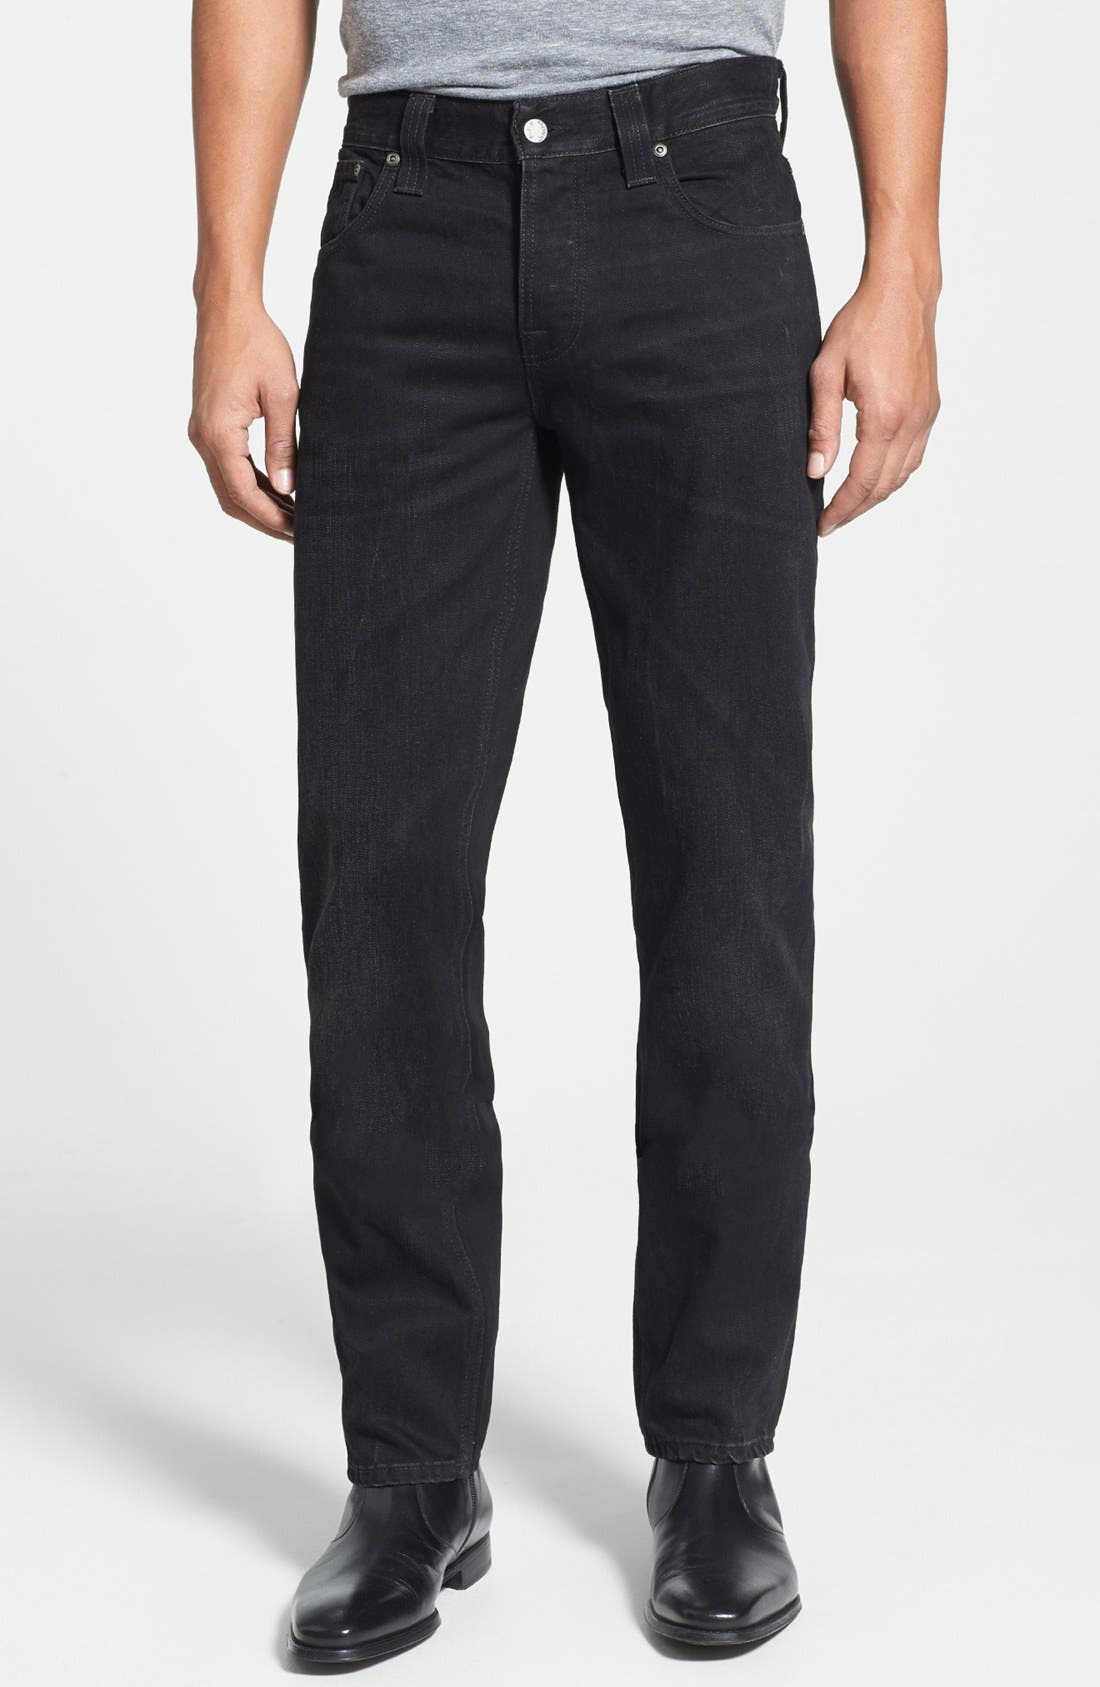 Alternate Image 1 Selected - Nudie Jeans 'Grim Tim' Skinny Fit Jeans (Organic Black Grease)